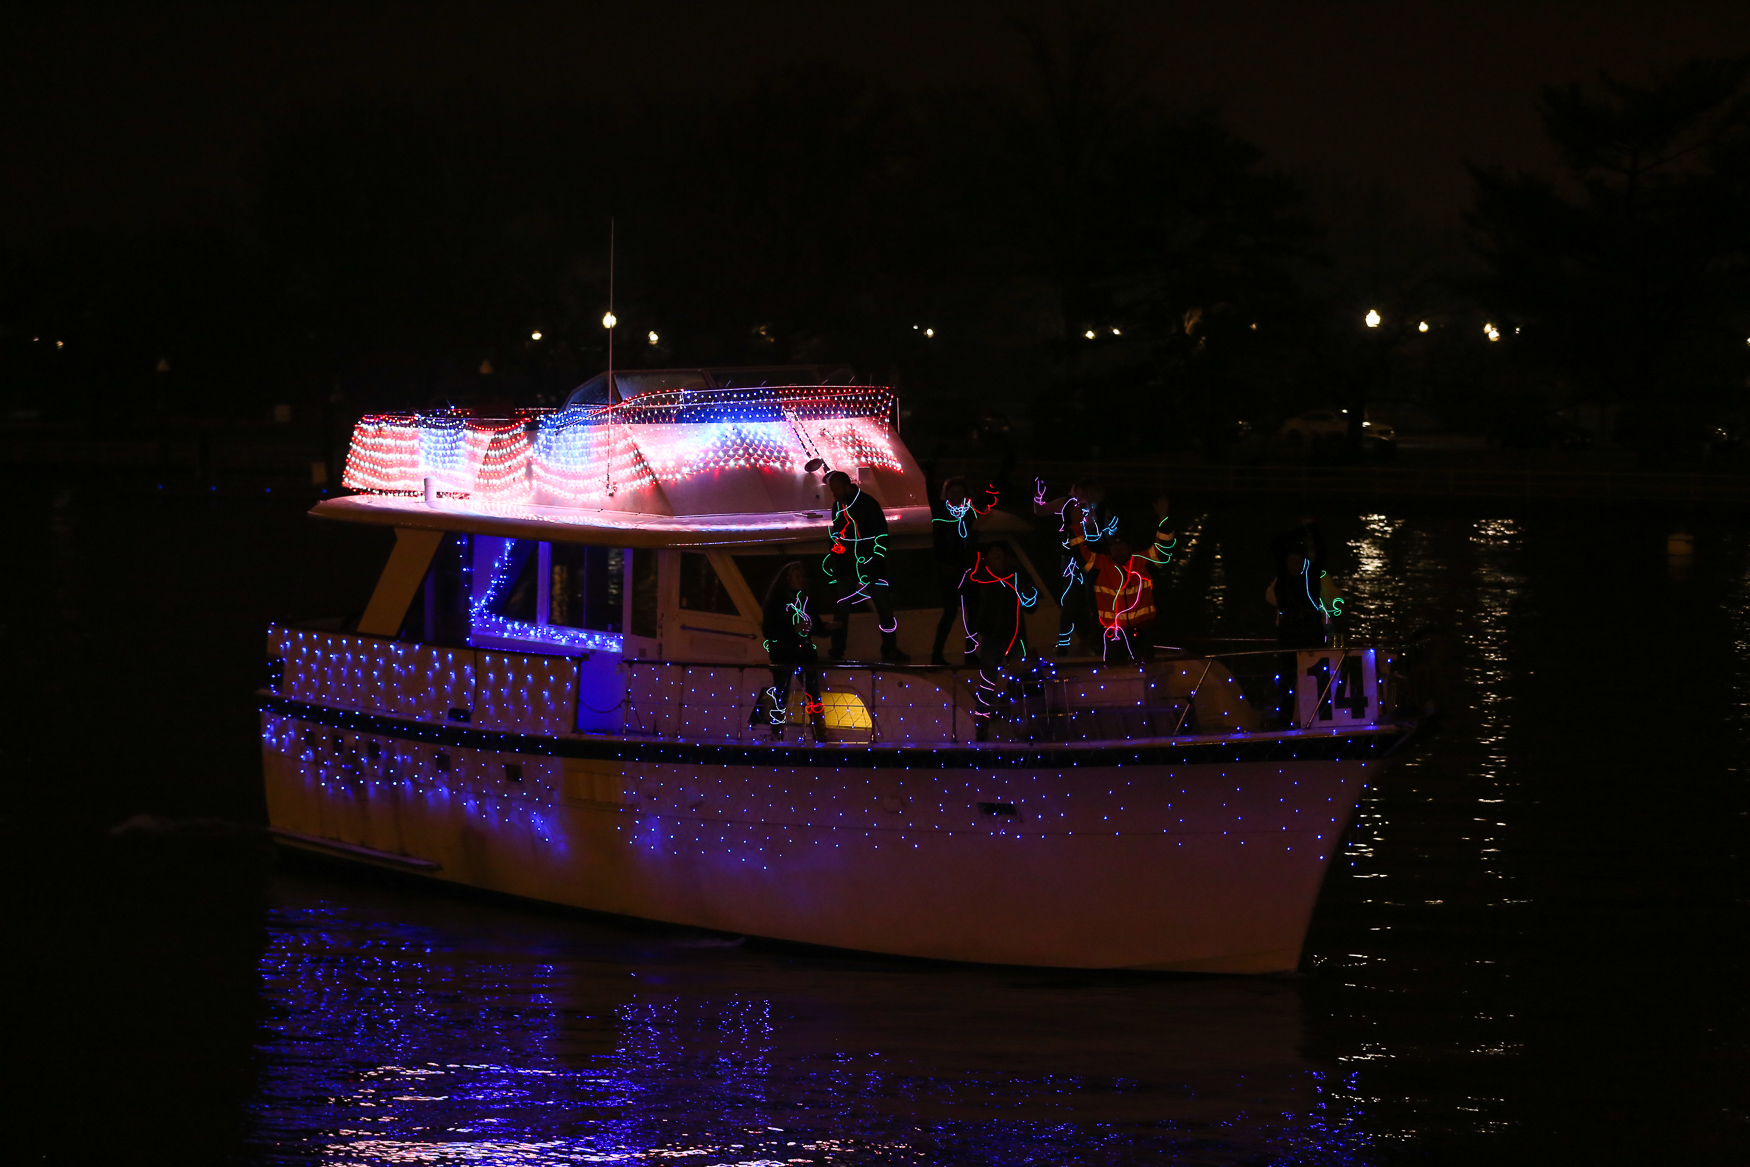 Dozens of boats decked out in glittering lights glided past The Wharf on December 1 for The District's Holiday Boat Parade. The themes ranged from 'The Nightmare Before Christmas' to a Hanukkah rave and the crowds cheered for their favorites. Guests also enjoyed photos with Santa, a live performance from Go Go Gadjet, s'mores and a fireworks display. (Amanda Andrade-Rhoades/DC Refined)<br>